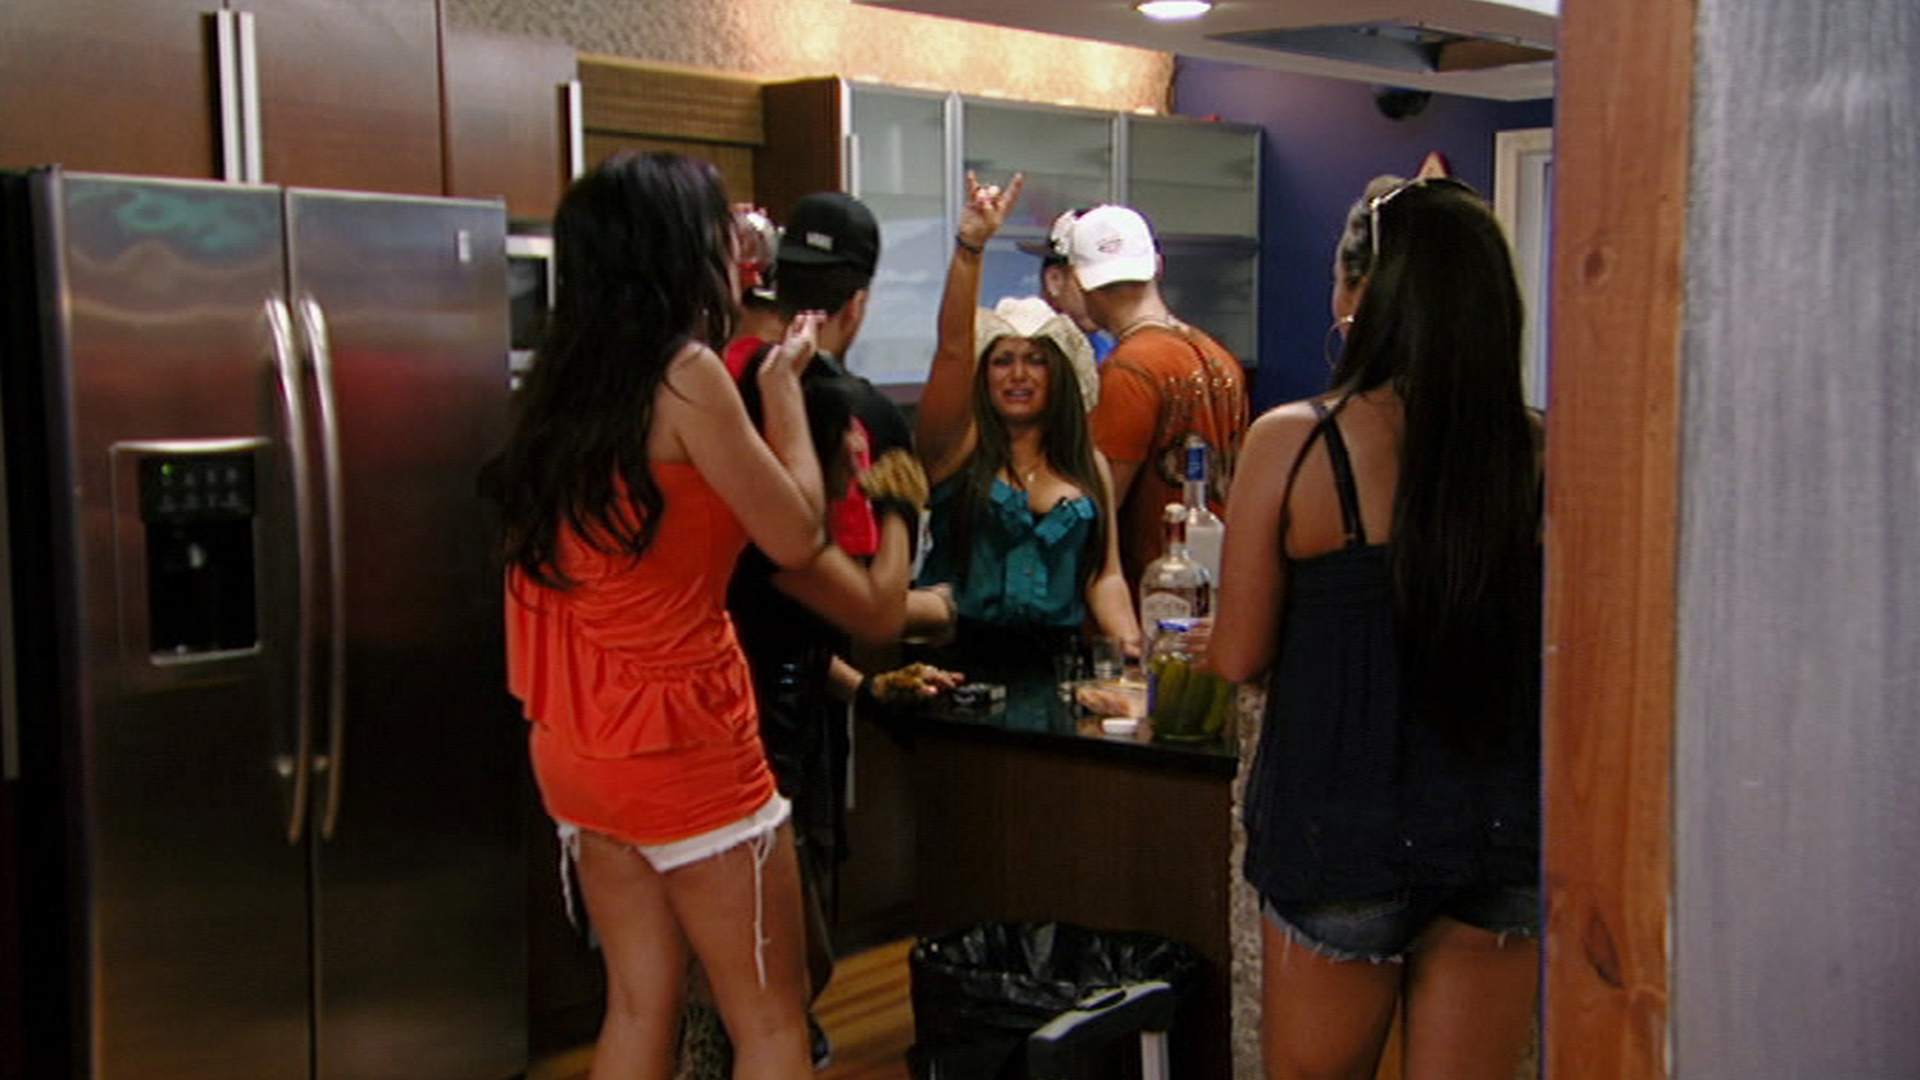 Watch Jersey Shore Season 6 Episode 1: Once More Unto the Beach - Full show on Paramount Plus